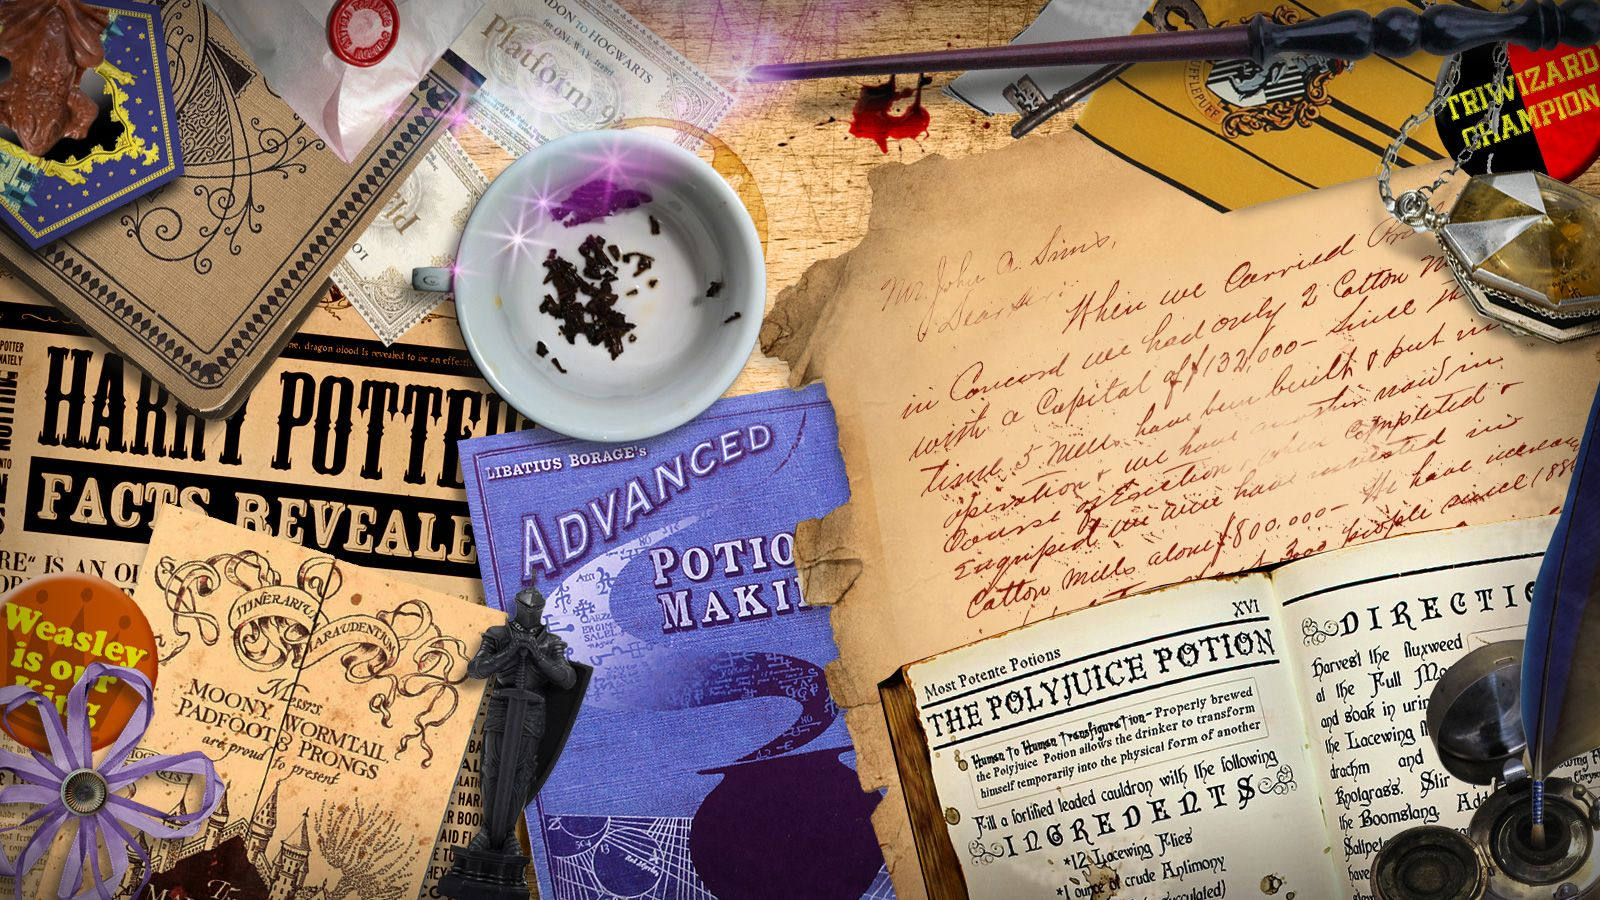 Harry Potter Desk Wallpaper And Gmail Theme By Bamberos Desktop Wallpaper Harry Potter Harry Potter Wallpaper Harry Potter Wallpaper Backgrounds